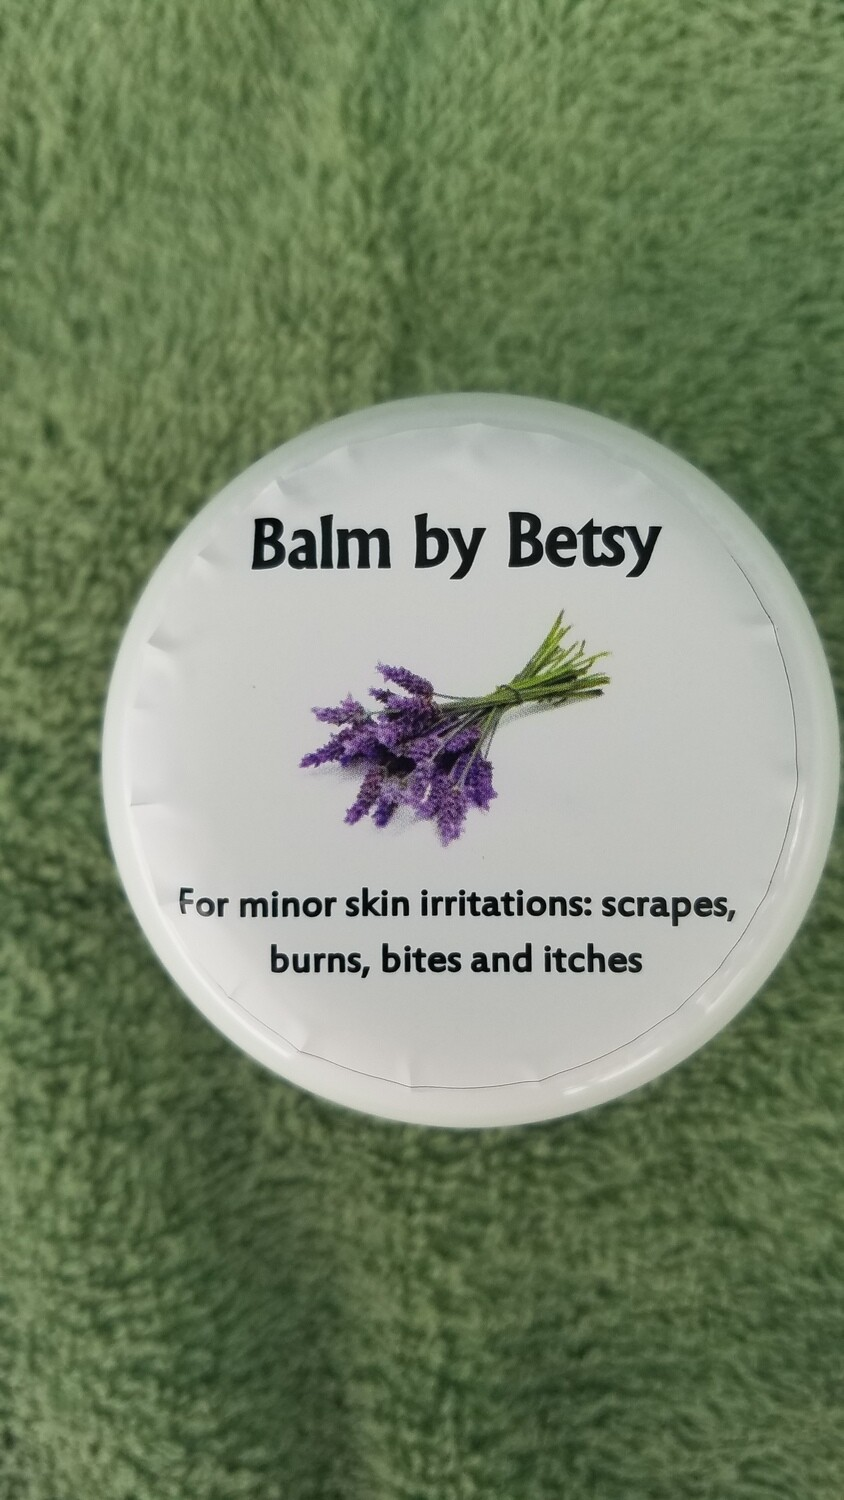 Balm by Betsy